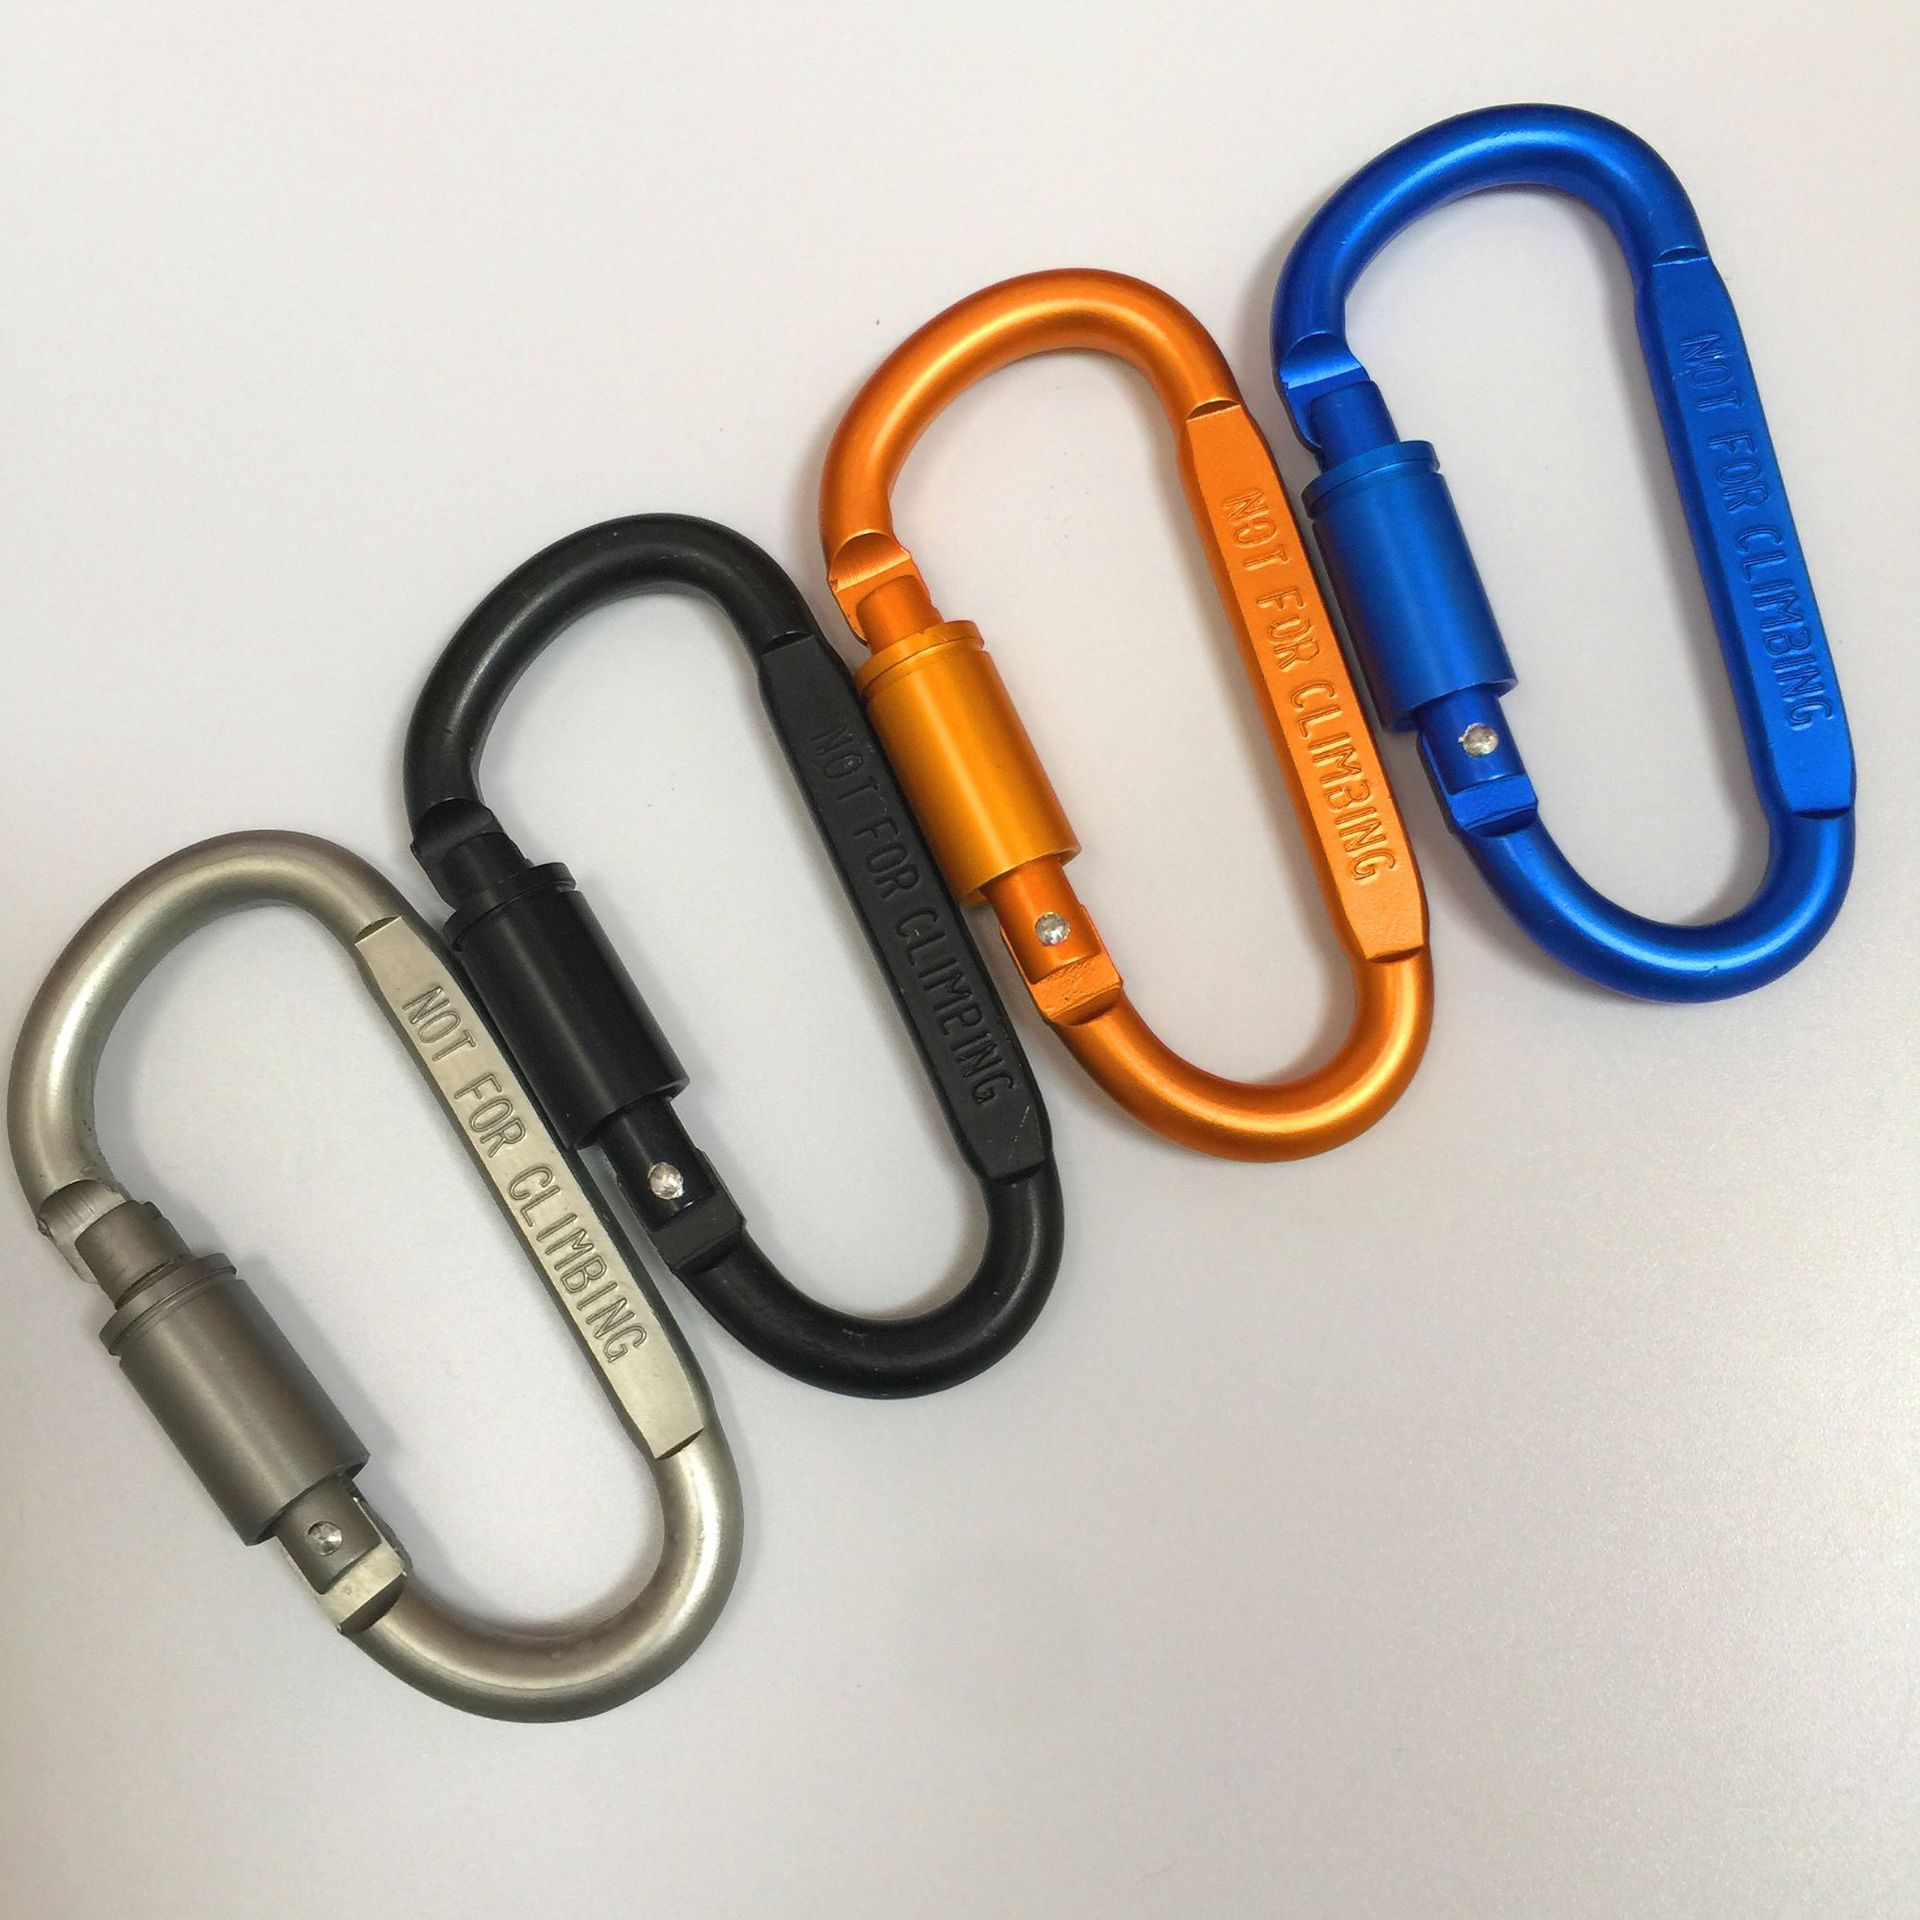 2019 Outdoor 8th D-shaped lock with bold carabiner automatic lock buckle buckle rock climbing downhill canyon hammock lock -7